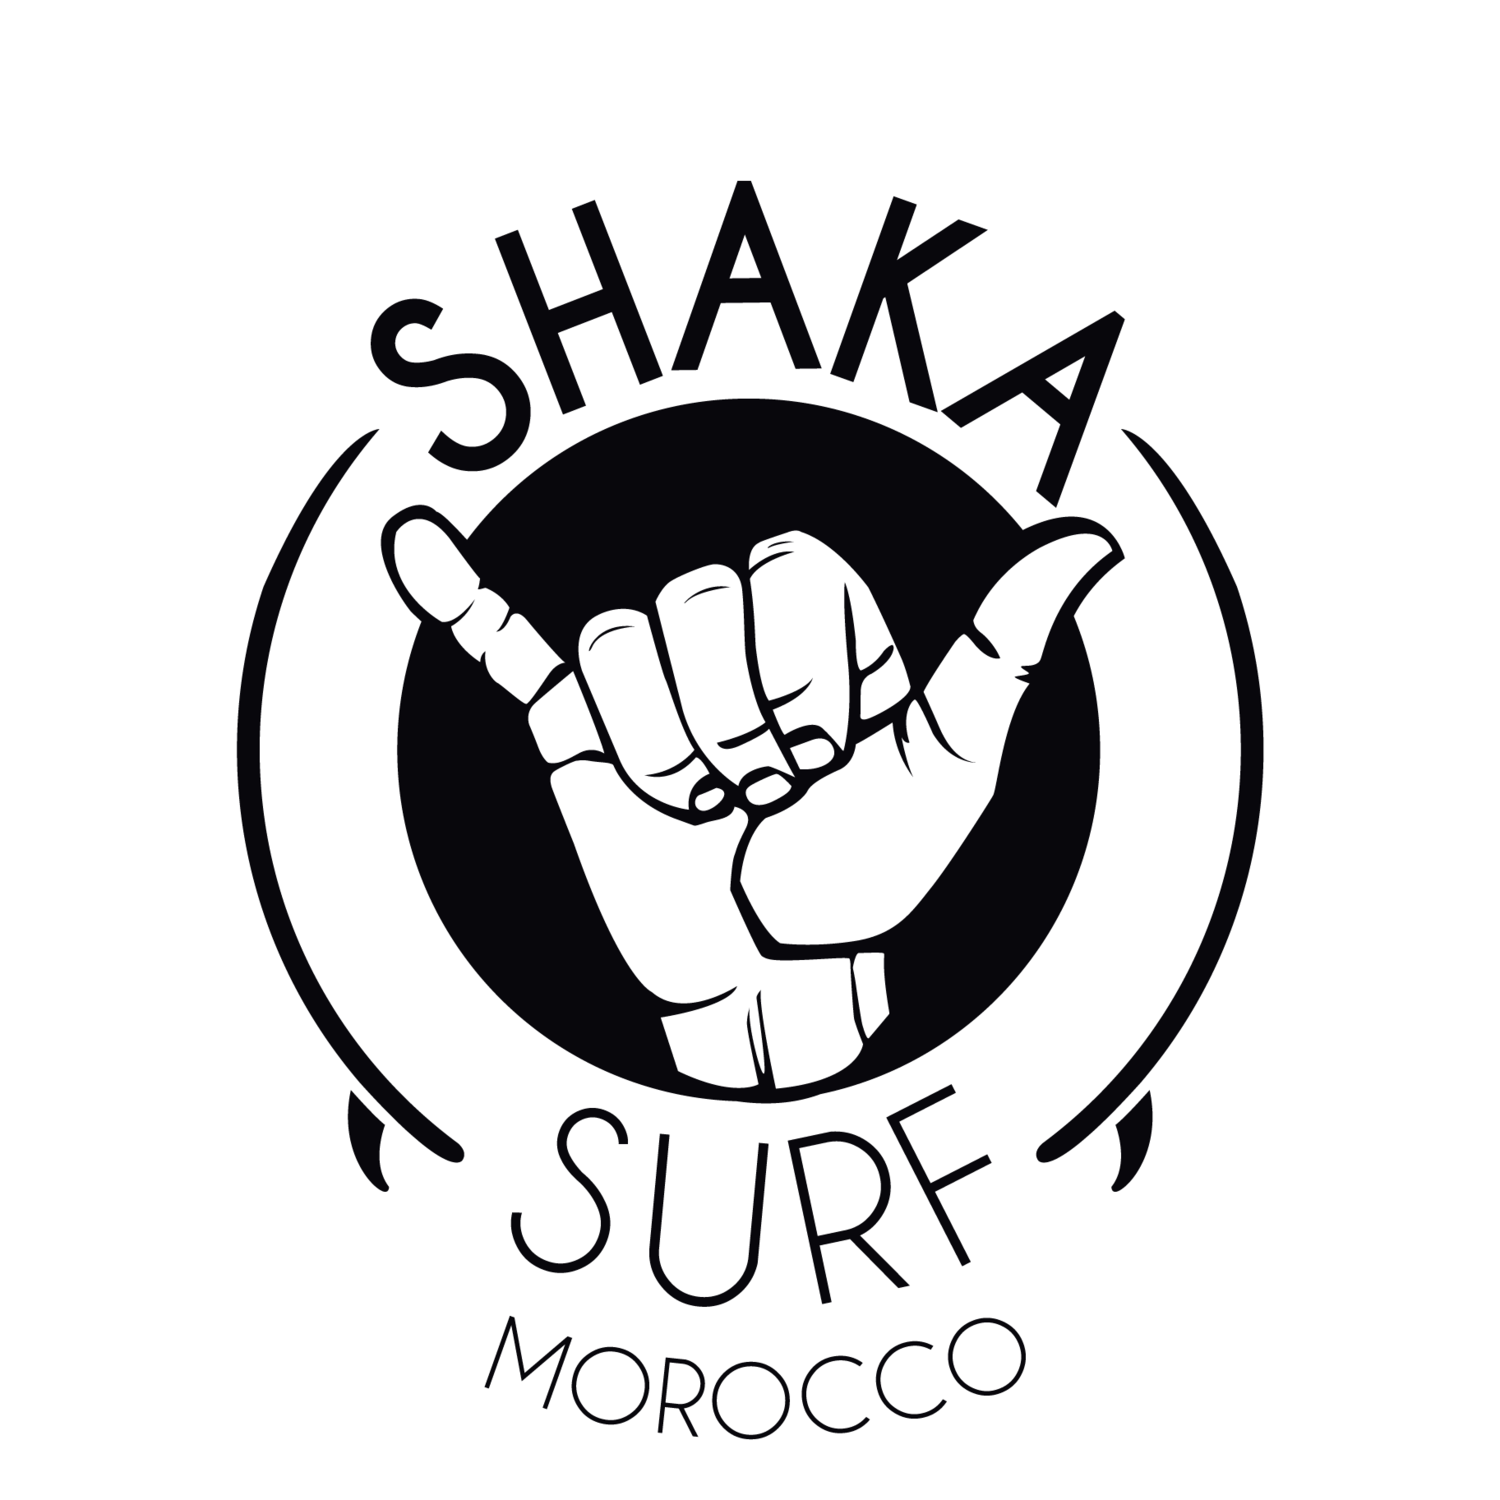 SHAKA SURF MOROCCO - SURF SCHOOL, SURF CAMP & TRIPS